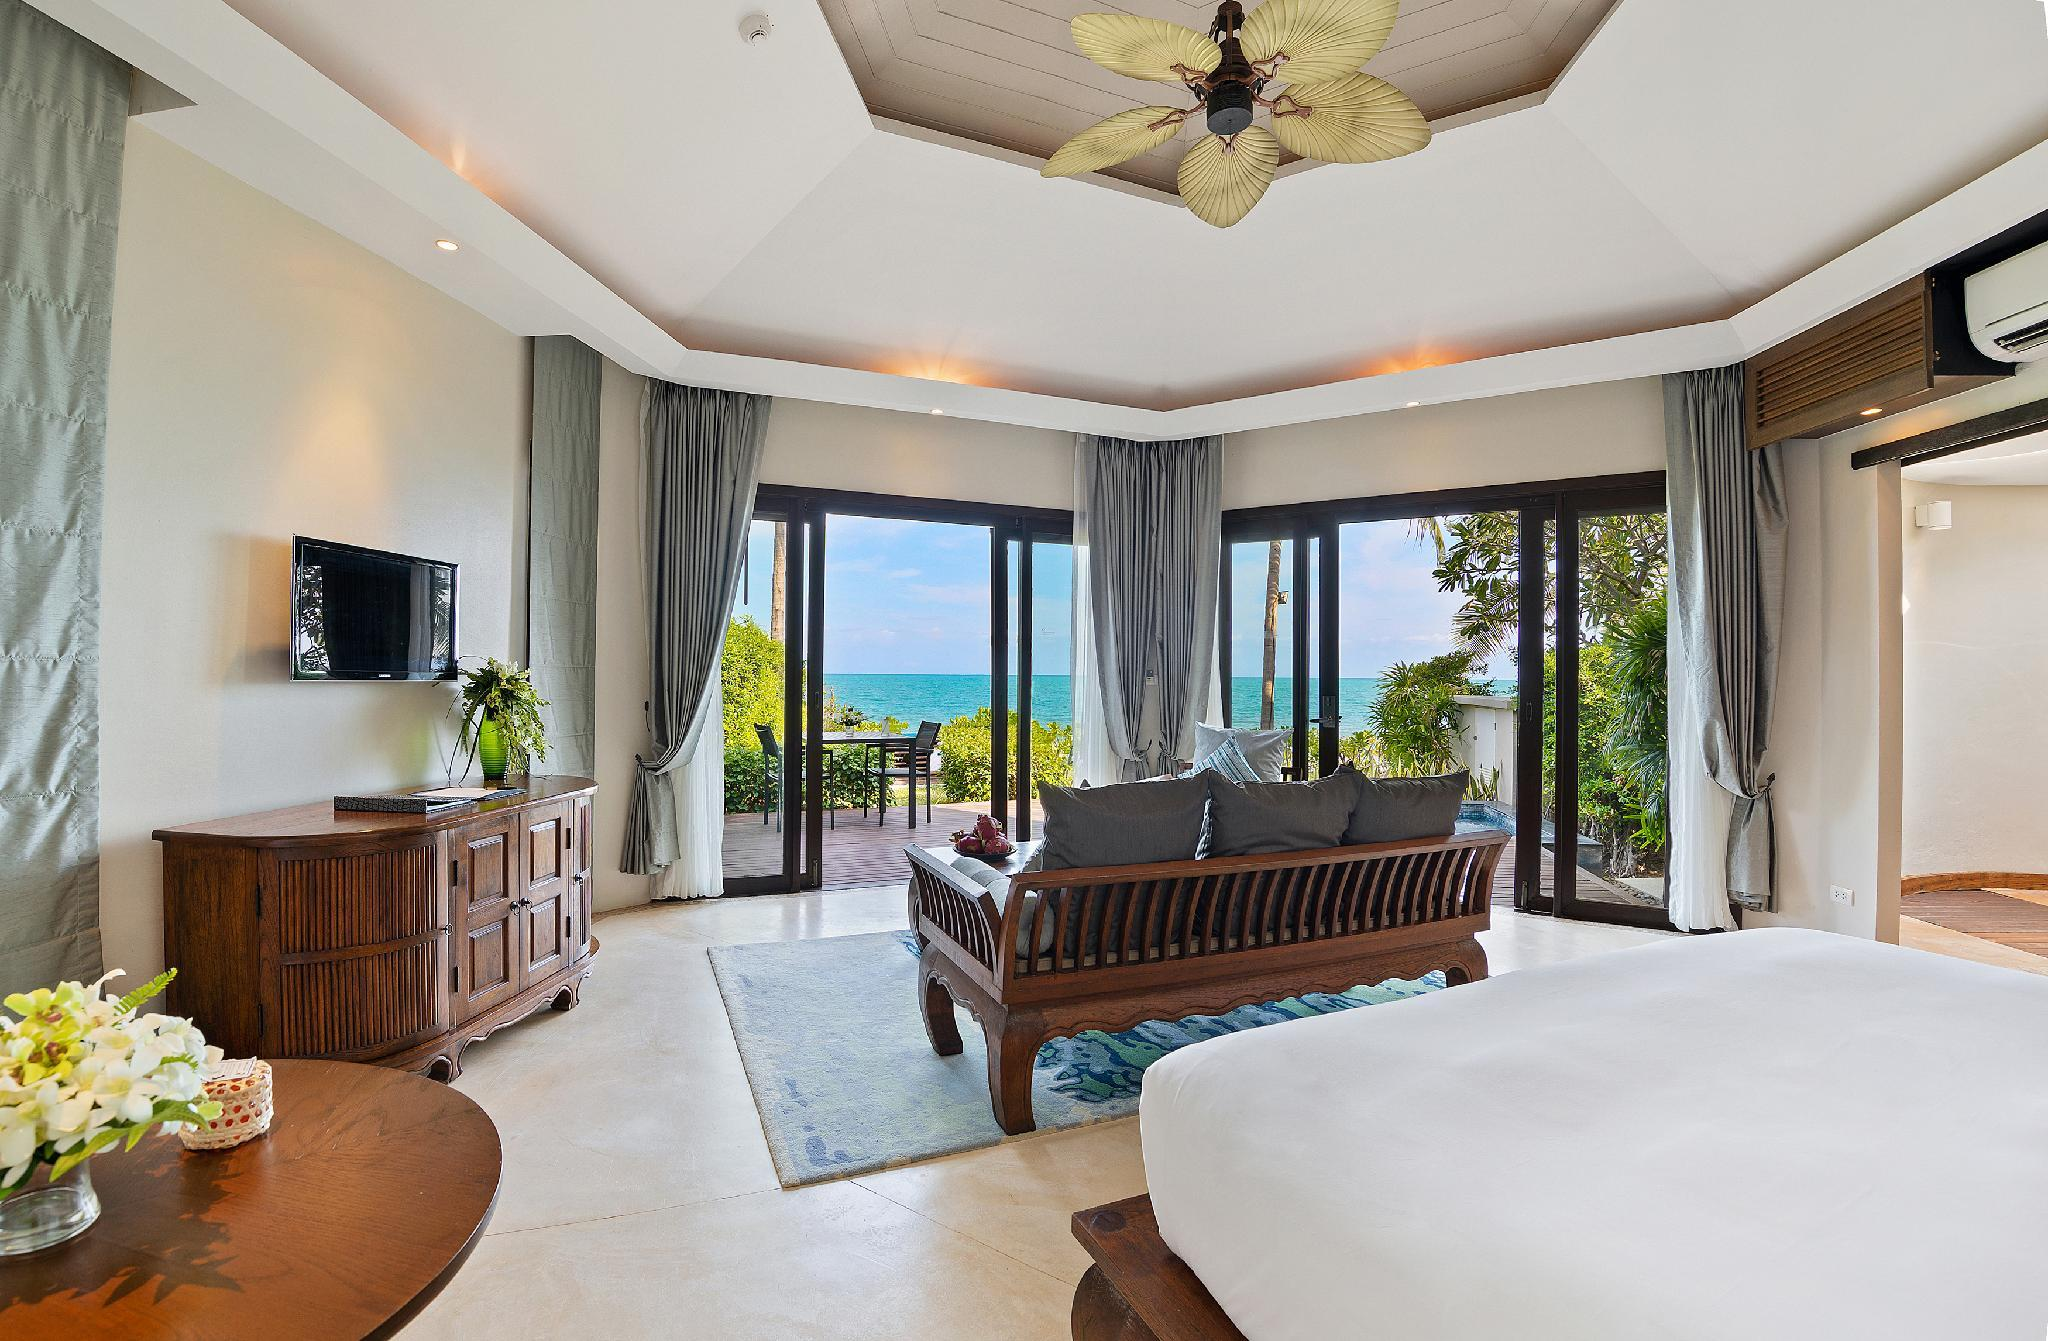 1-Bedroom Beachfront Suite with Plunge Pool